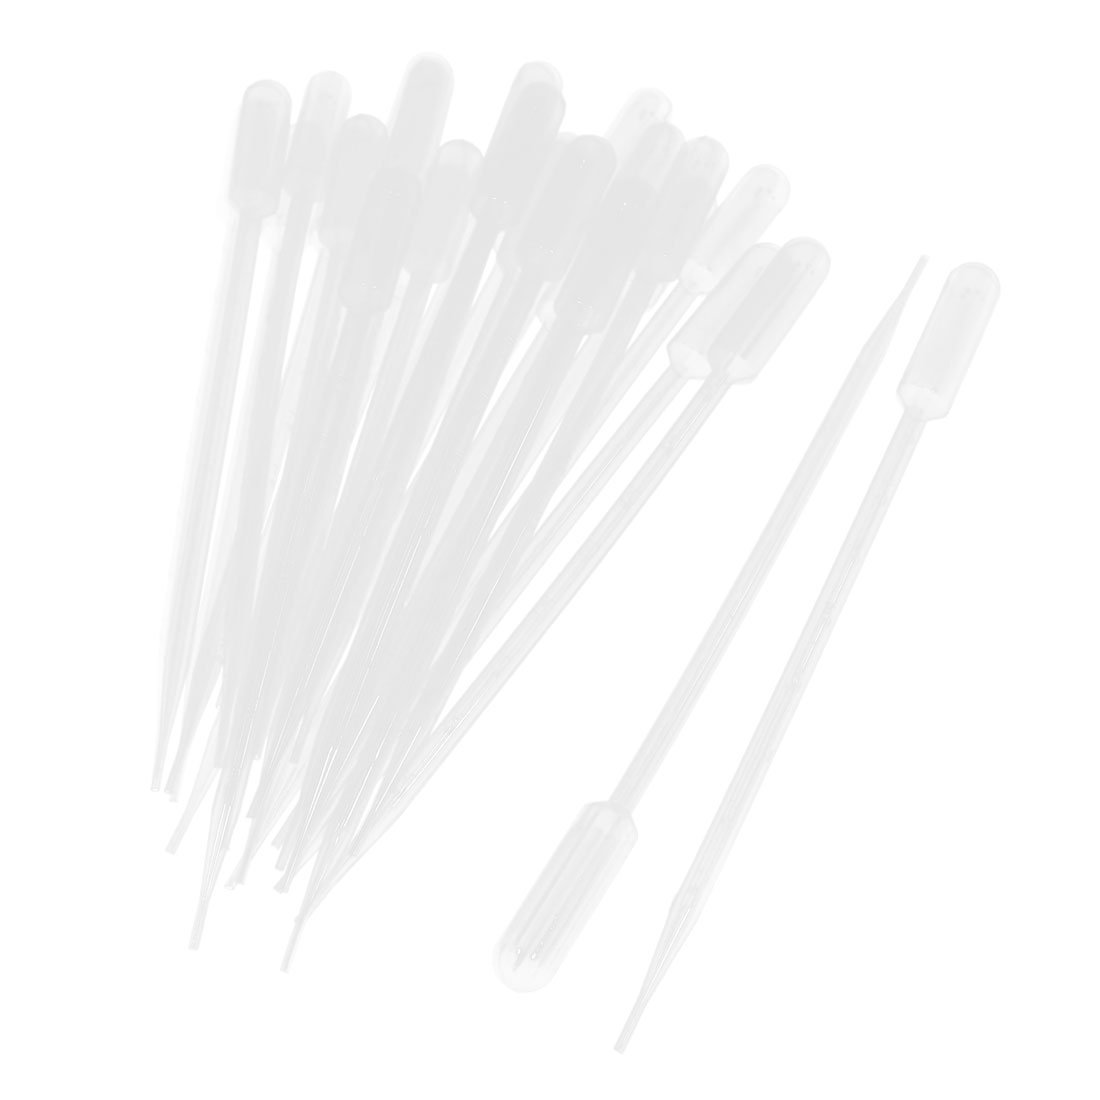 10ml Pipette Dropper - TOOGOO(R) 50 Pieces 10ml Clear Plastic Transfer Pipet Pasteur Pipettes Droppers SODIAL(R) SPAGMT43038